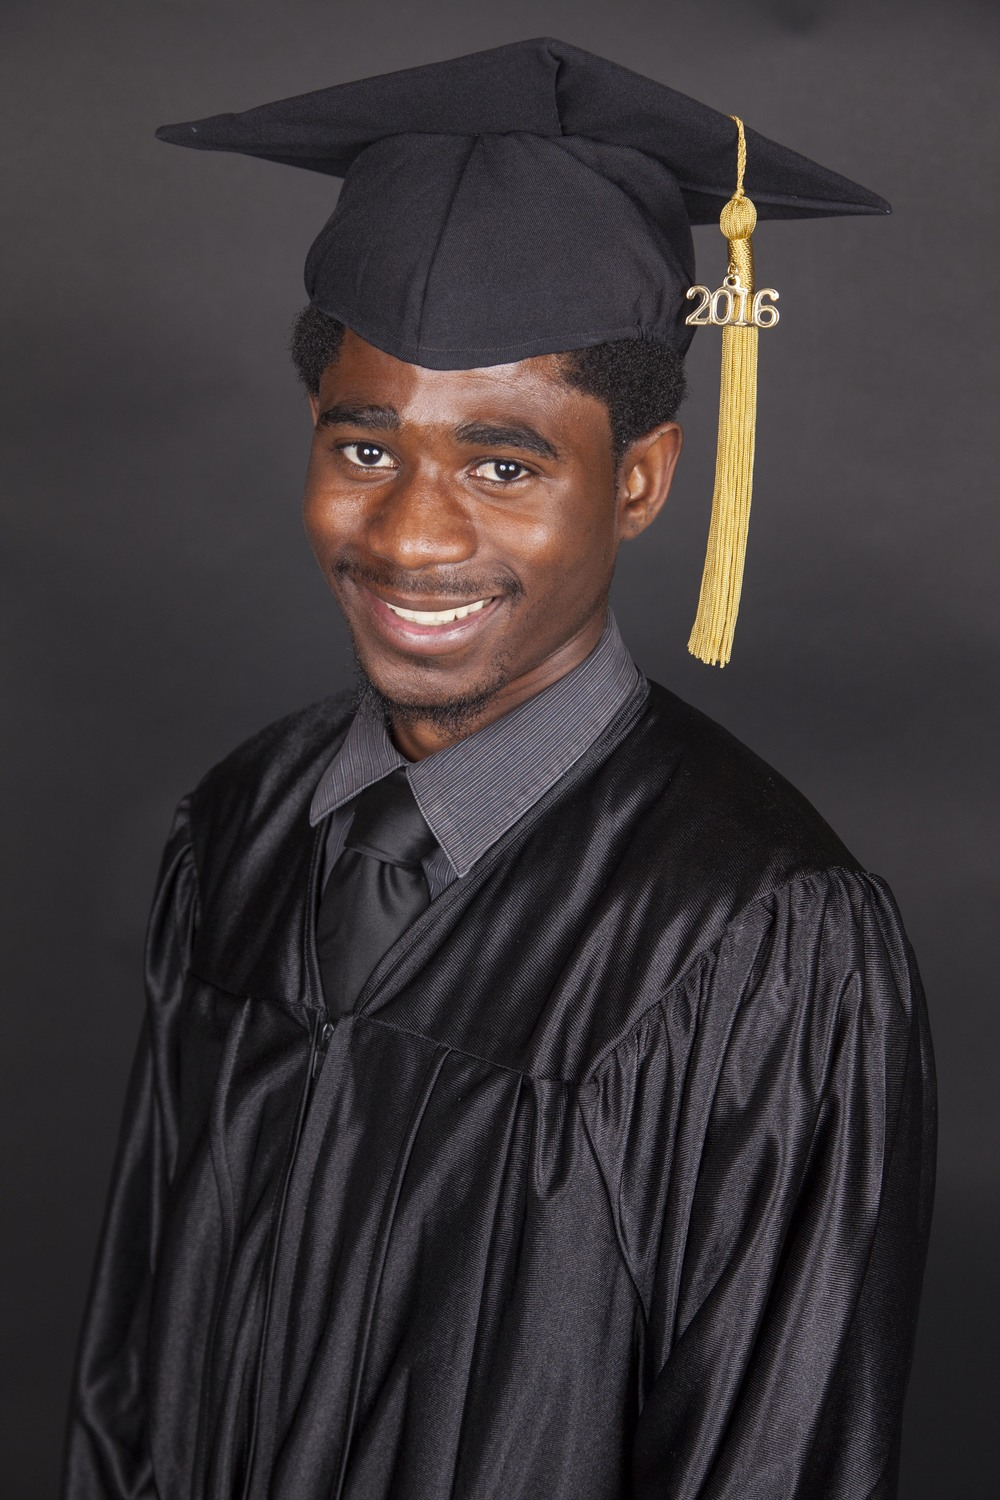 08_2016_Cap&Gown_(photo_credit_Christina_Simons).jpg